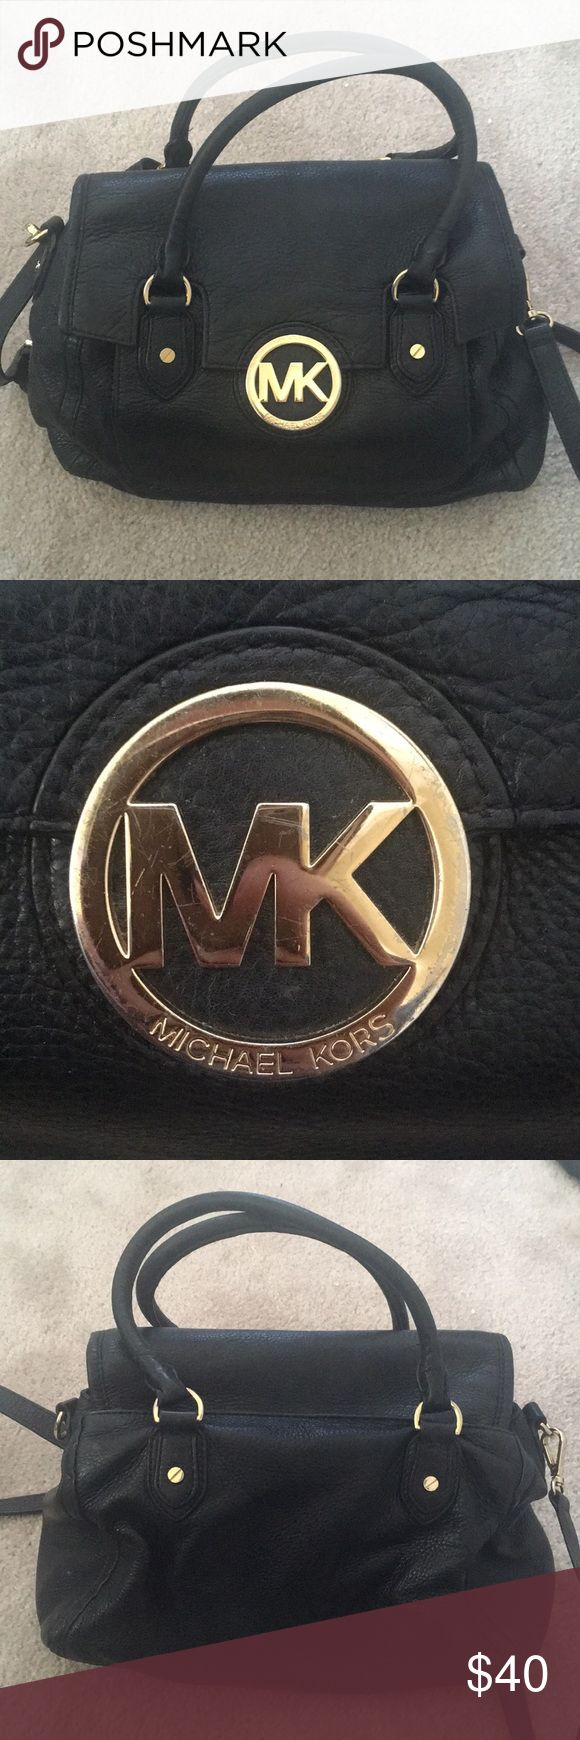 Loved Michael Kors Black bag with satchel strap Perfect work bag for the new grad - soft black leather and lots of compartments. Used for about a year.  Wear on logo detail (see picture). KORS Michael Kors Bags Shoulder Bags